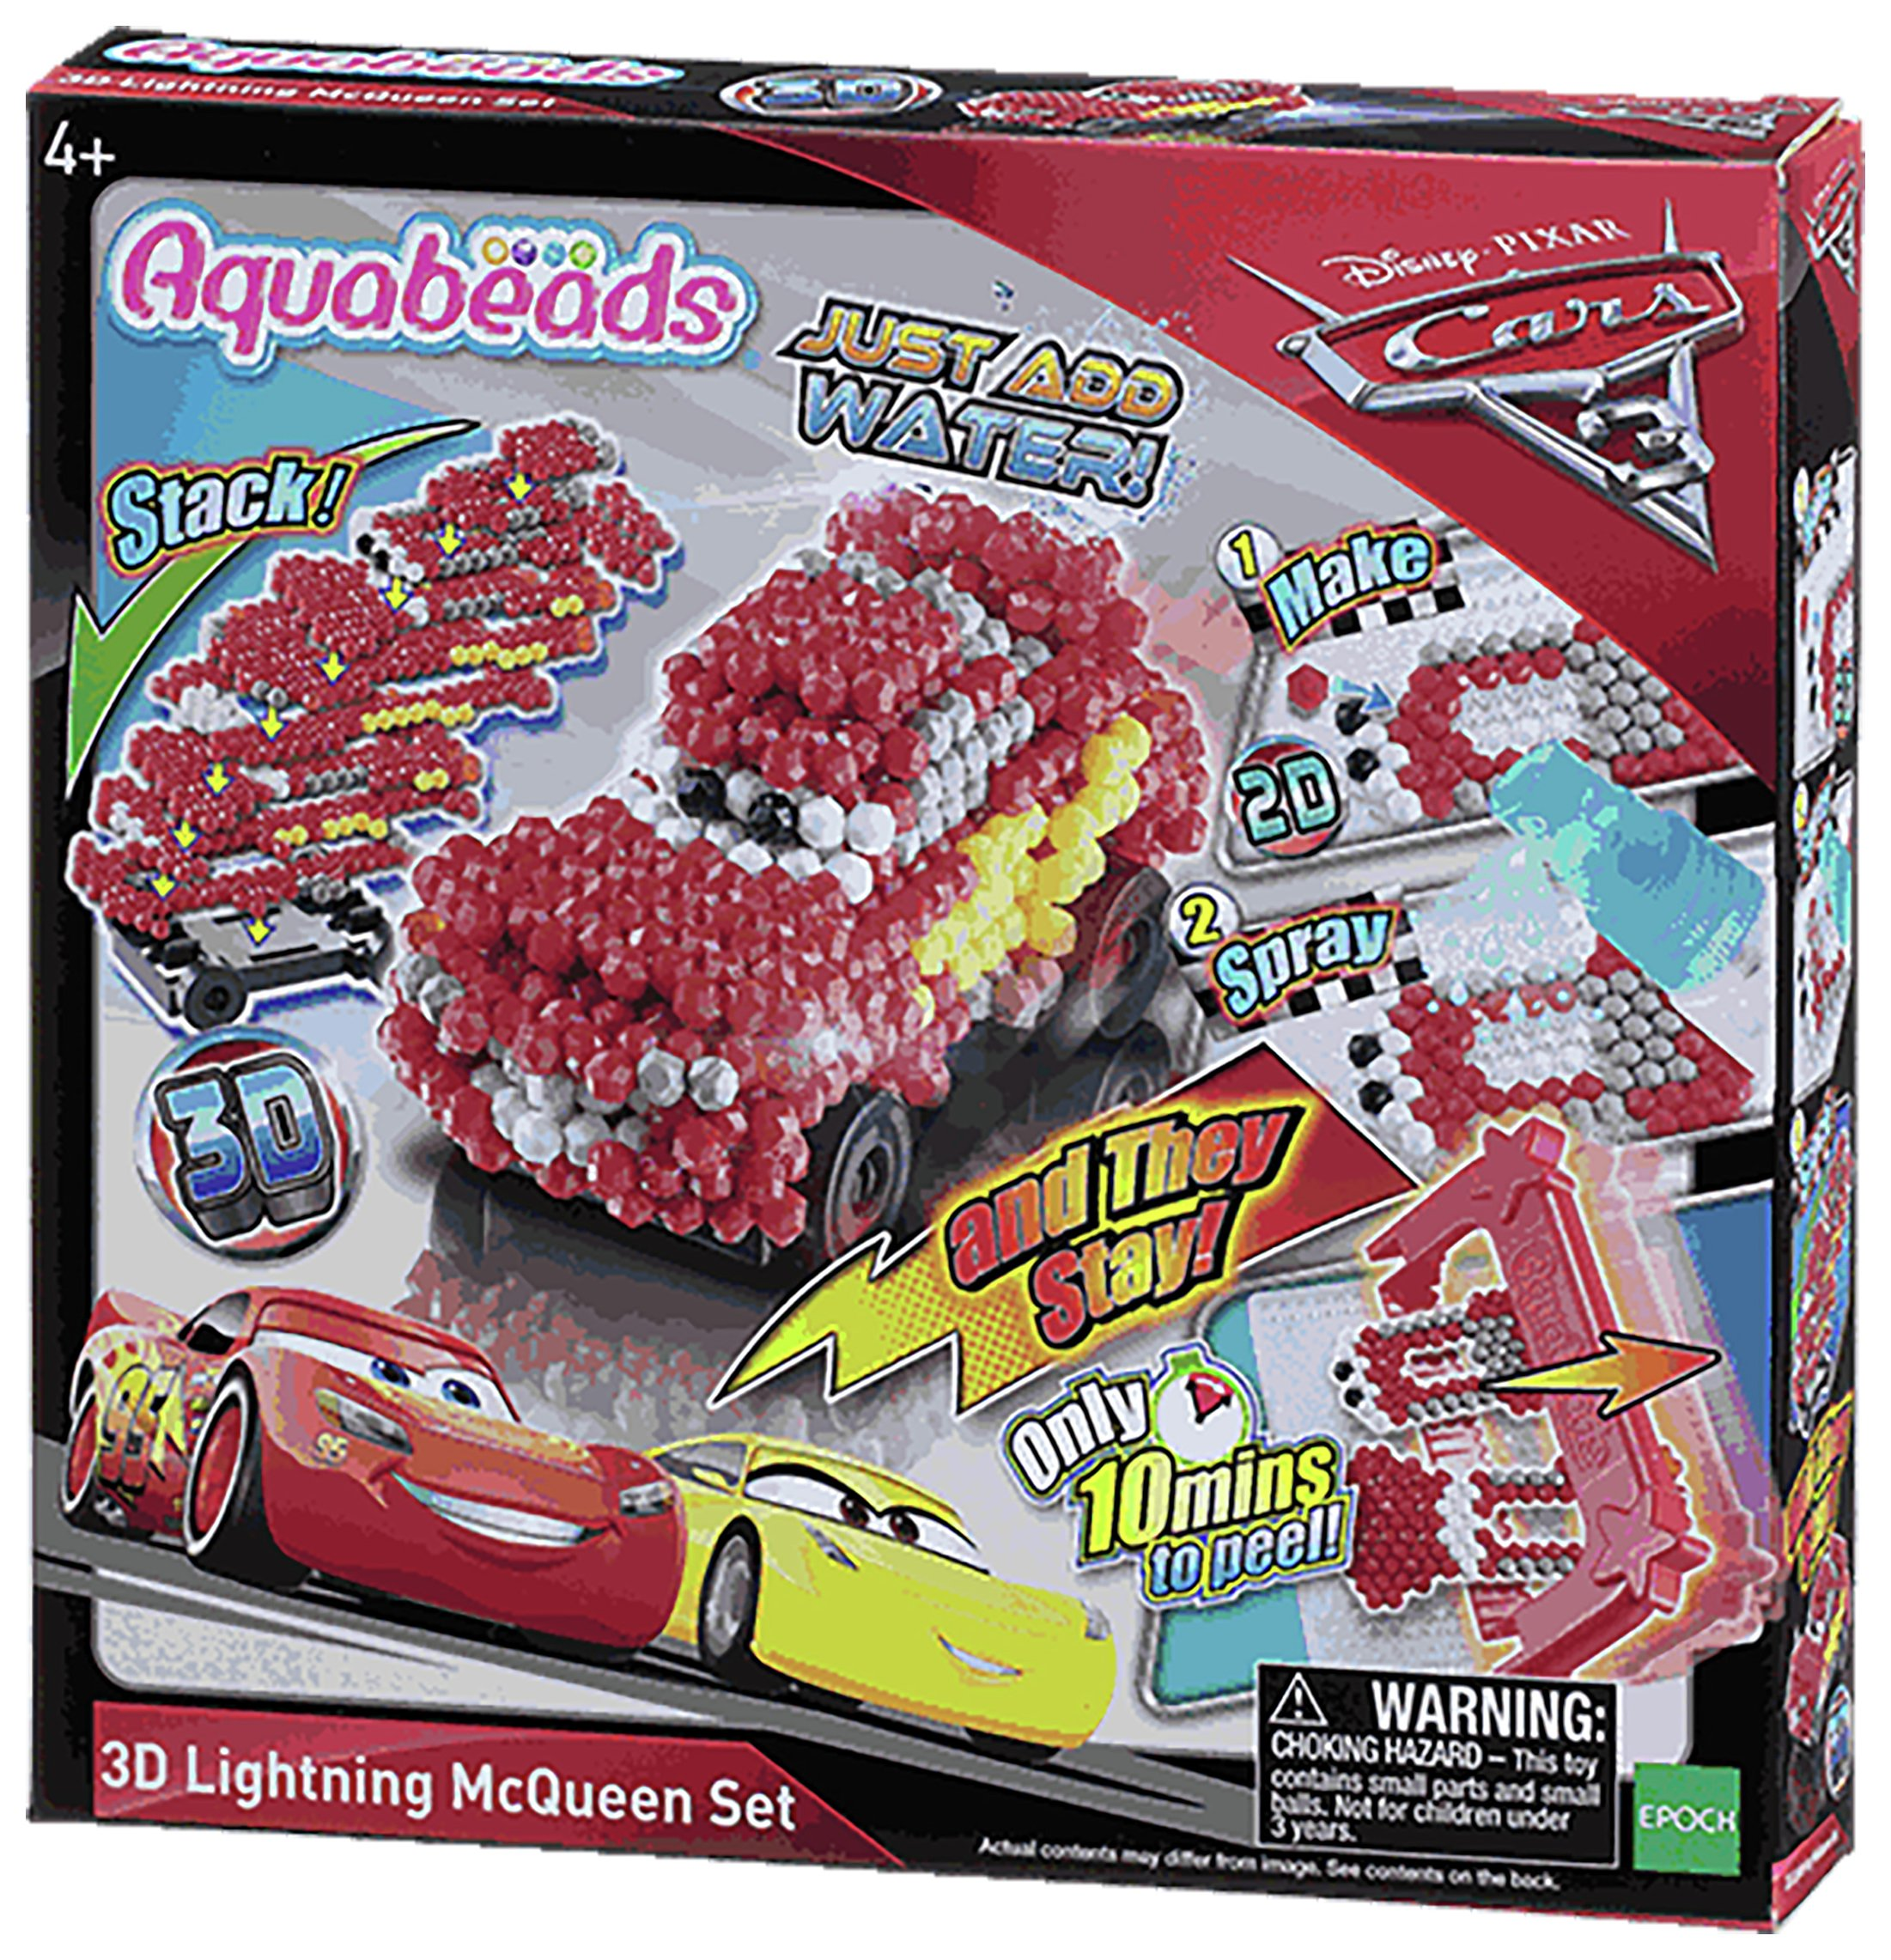 aquabeads-cars-3-3d-lightning-mcqueen-set